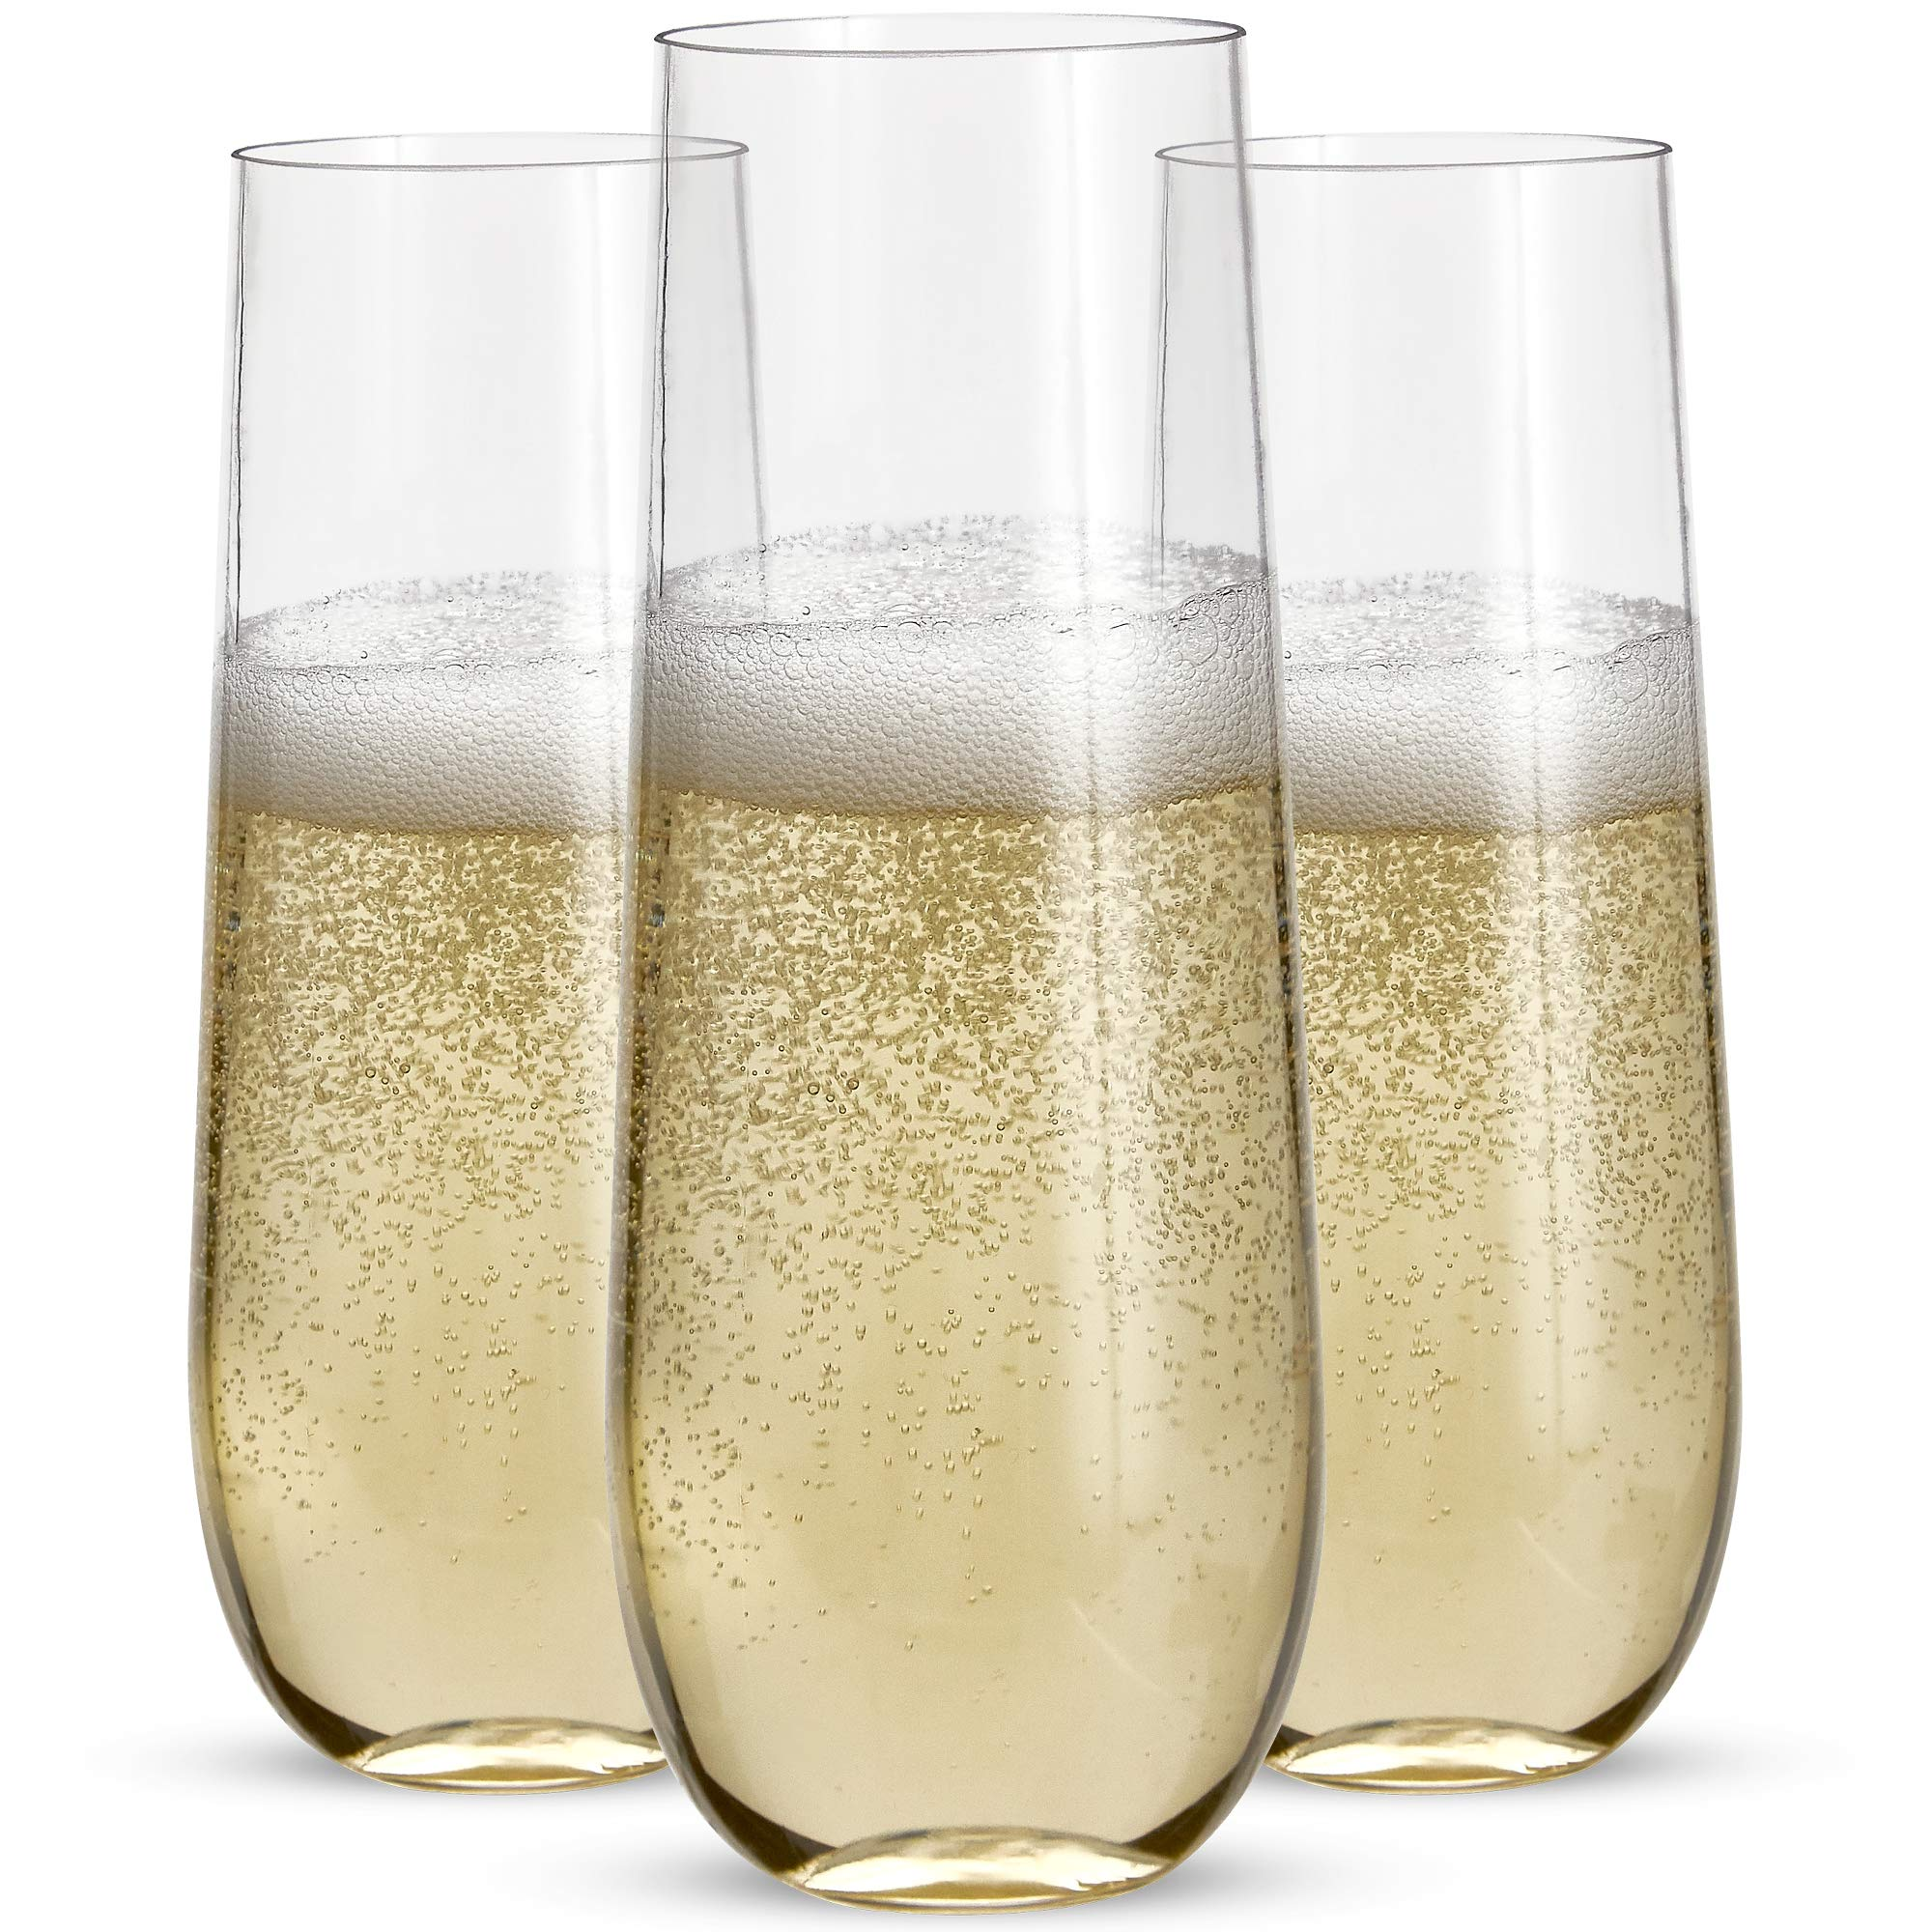 36 Stemless Plastic Champagne Flutes - 9 Oz Plastic Champagne Glasses | Clear Plastic Unbreakable Toasting Glasses |Shatterproof | Disposable | Reusable Perfect For Wedding Or Party